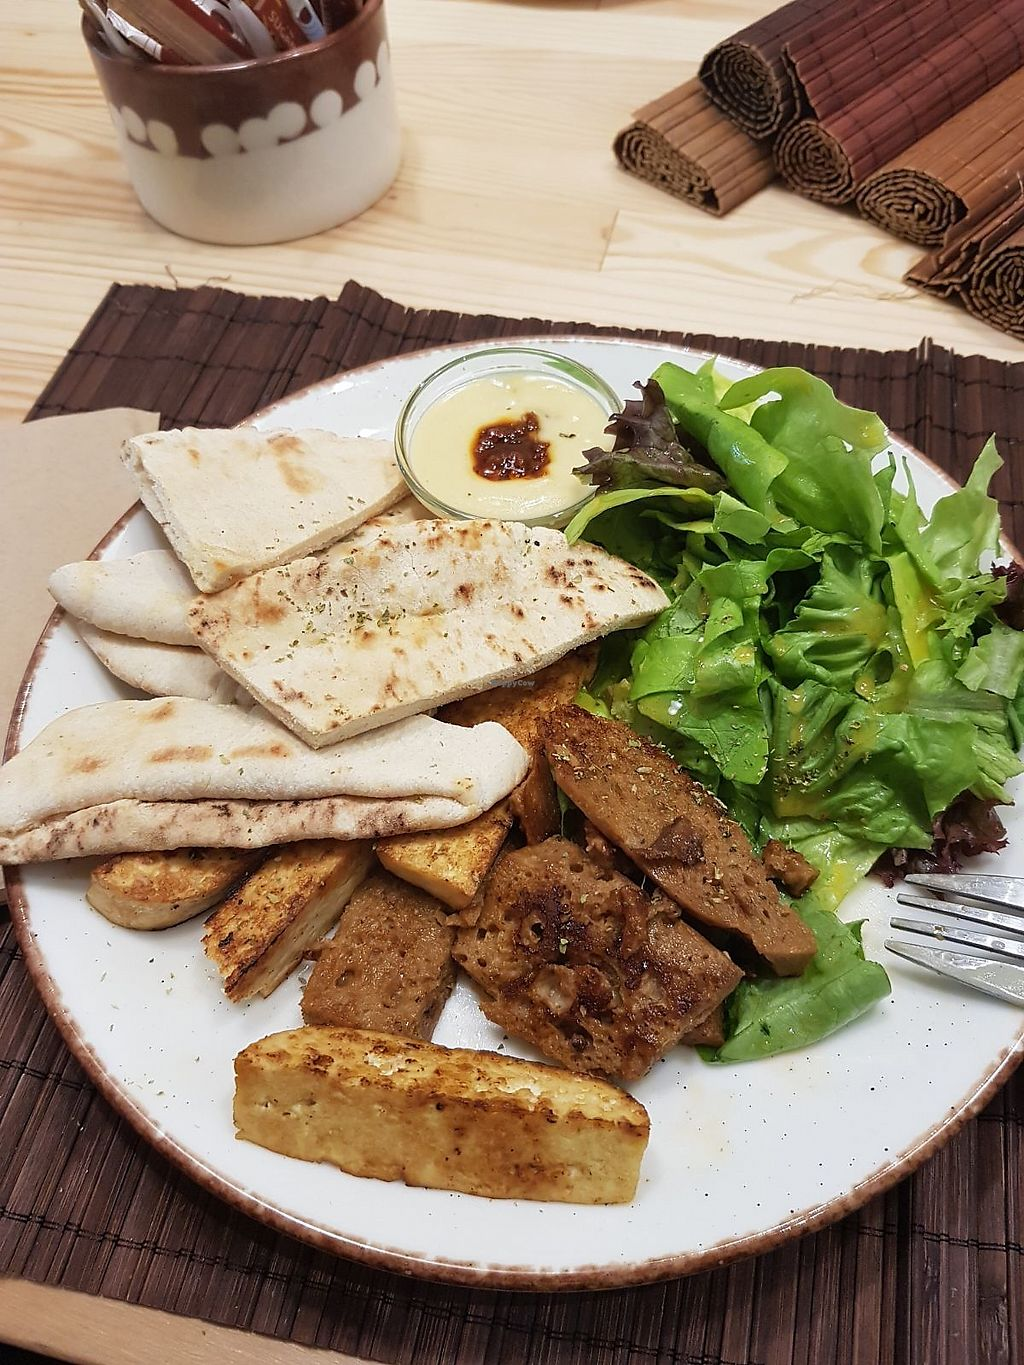 """Photo of Peas  by <a href=""""/members/profile/vegan.goddammit"""">vegan.goddammit</a> <br/>Platter (tofu, seitan, pita and salad) <br/> March 5, 2018  - <a href='/contact/abuse/image/104532/367190'>Report</a>"""